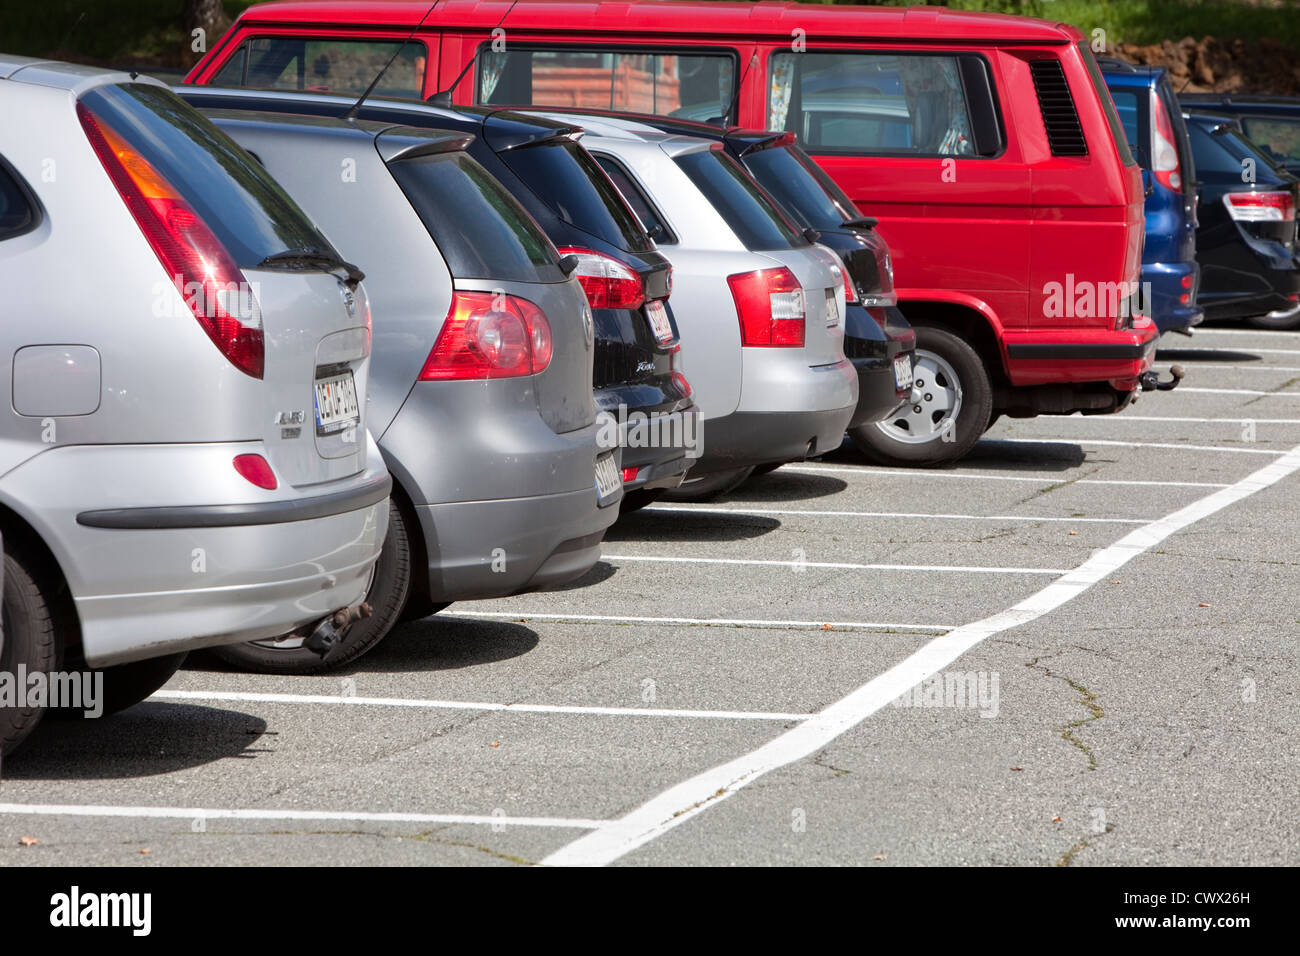 Occupied parking area, concept image, parking spaces in Germany, Europe - Stock Image